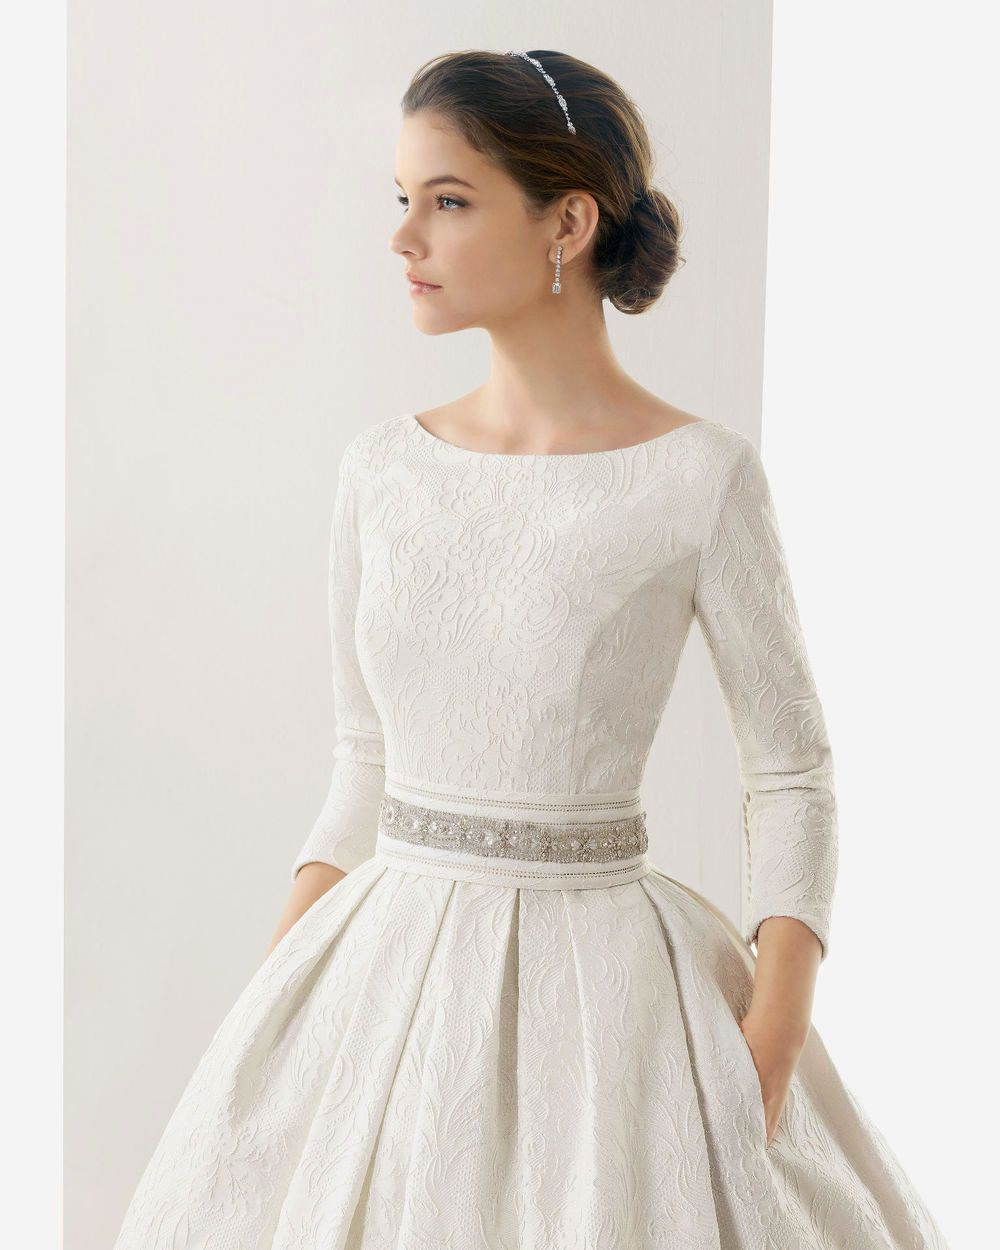 Long Sleeve Short Wedding Dress Uk Wedding In 2018 Wedding